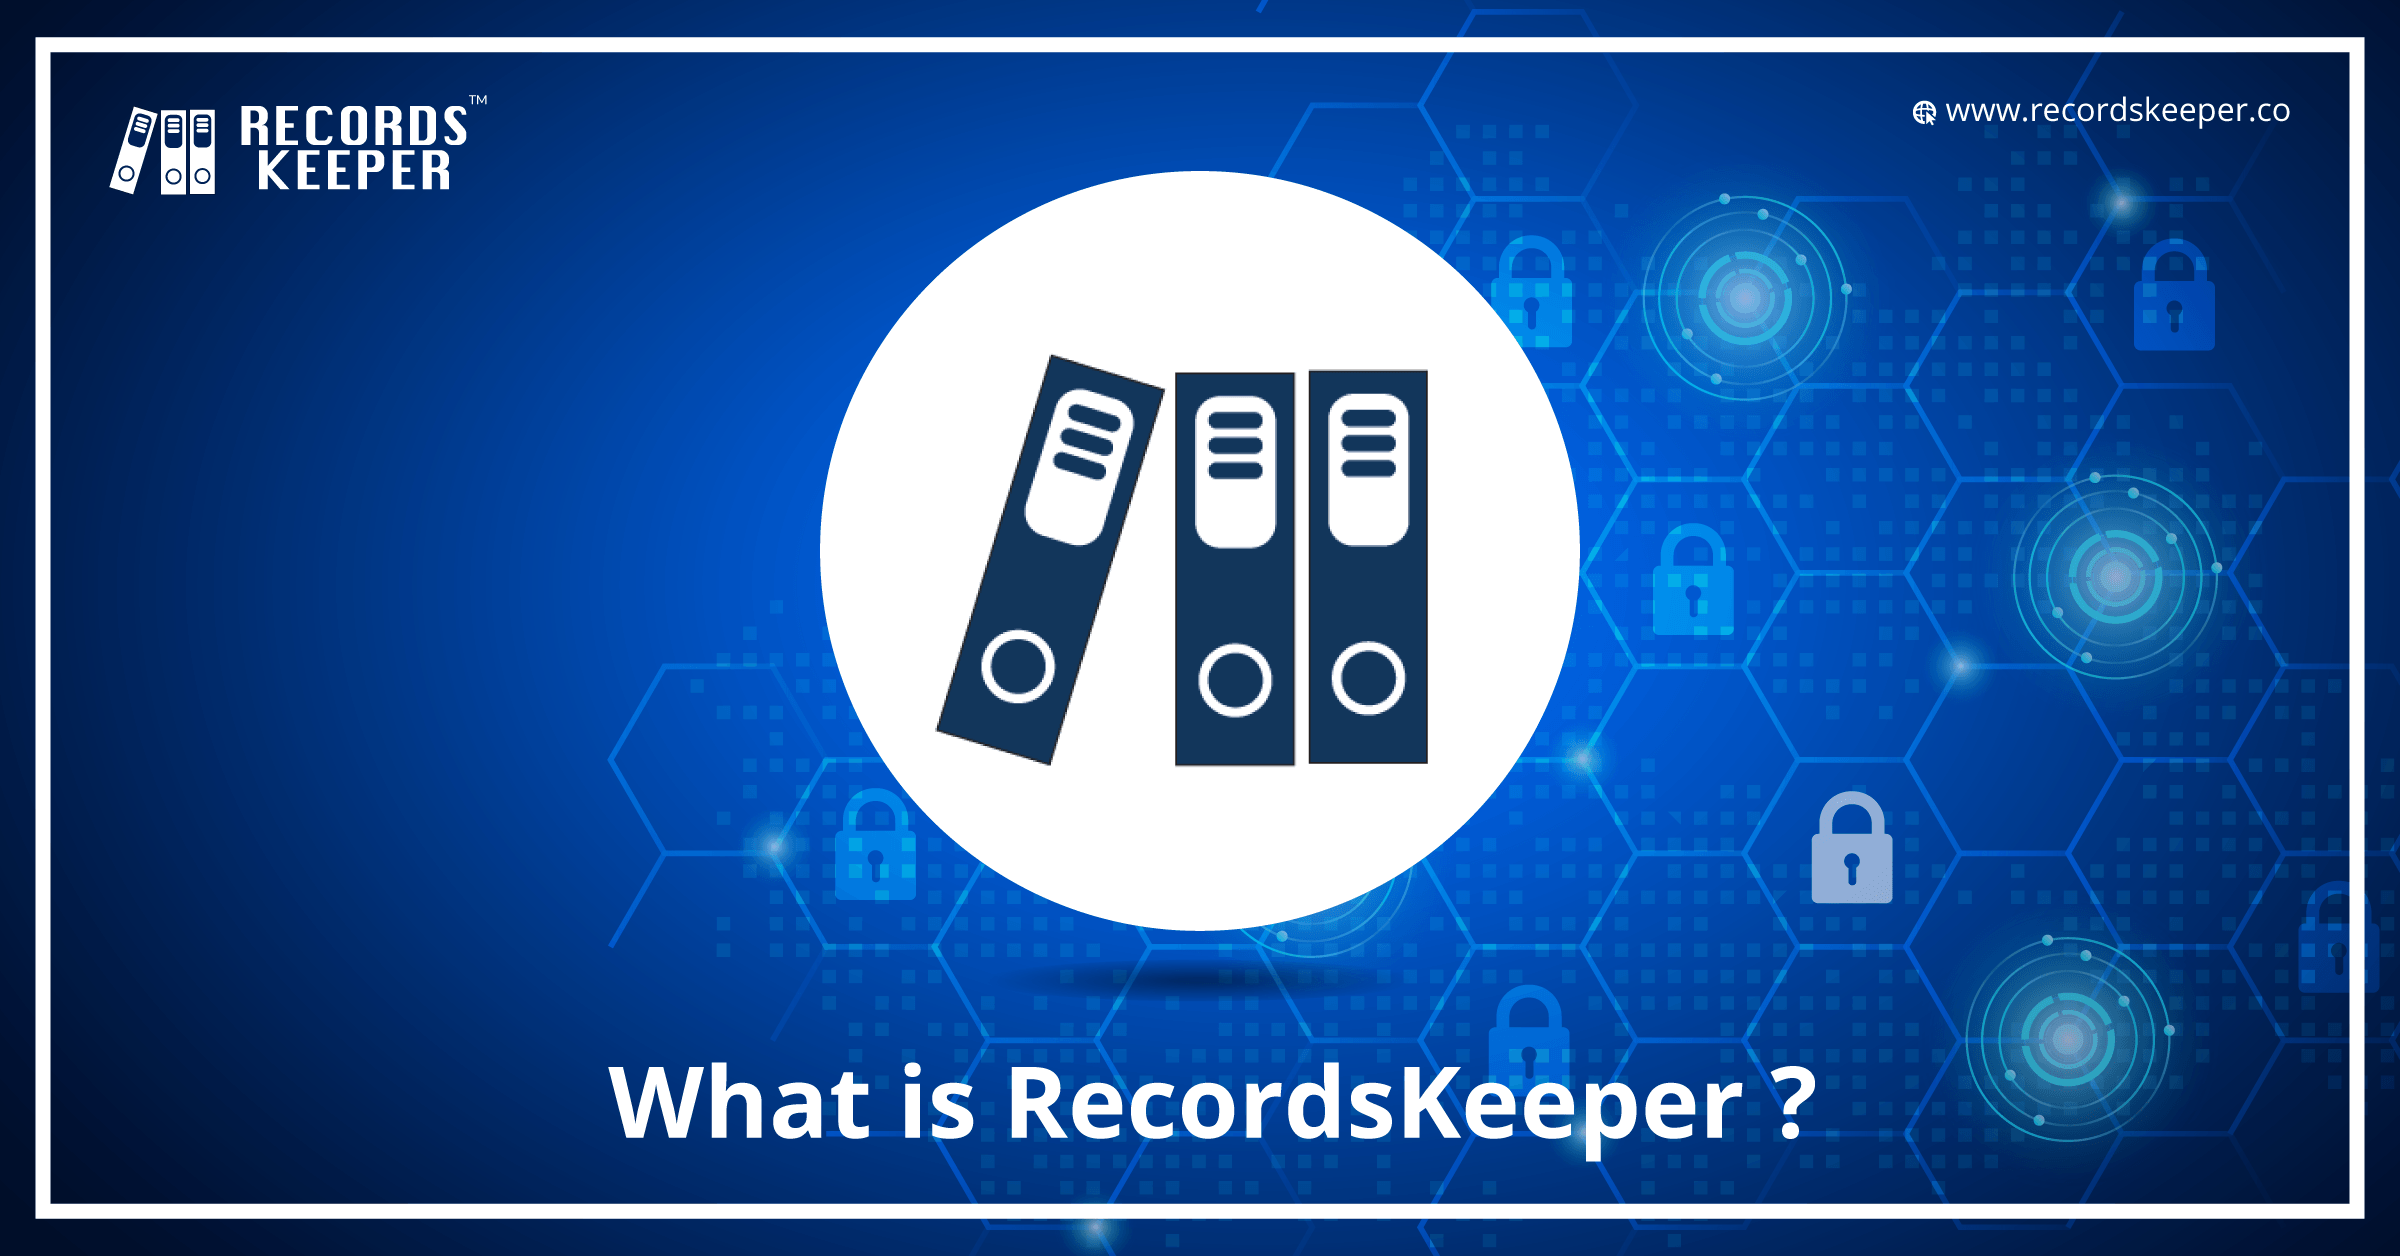 What is RecordsKeeper?